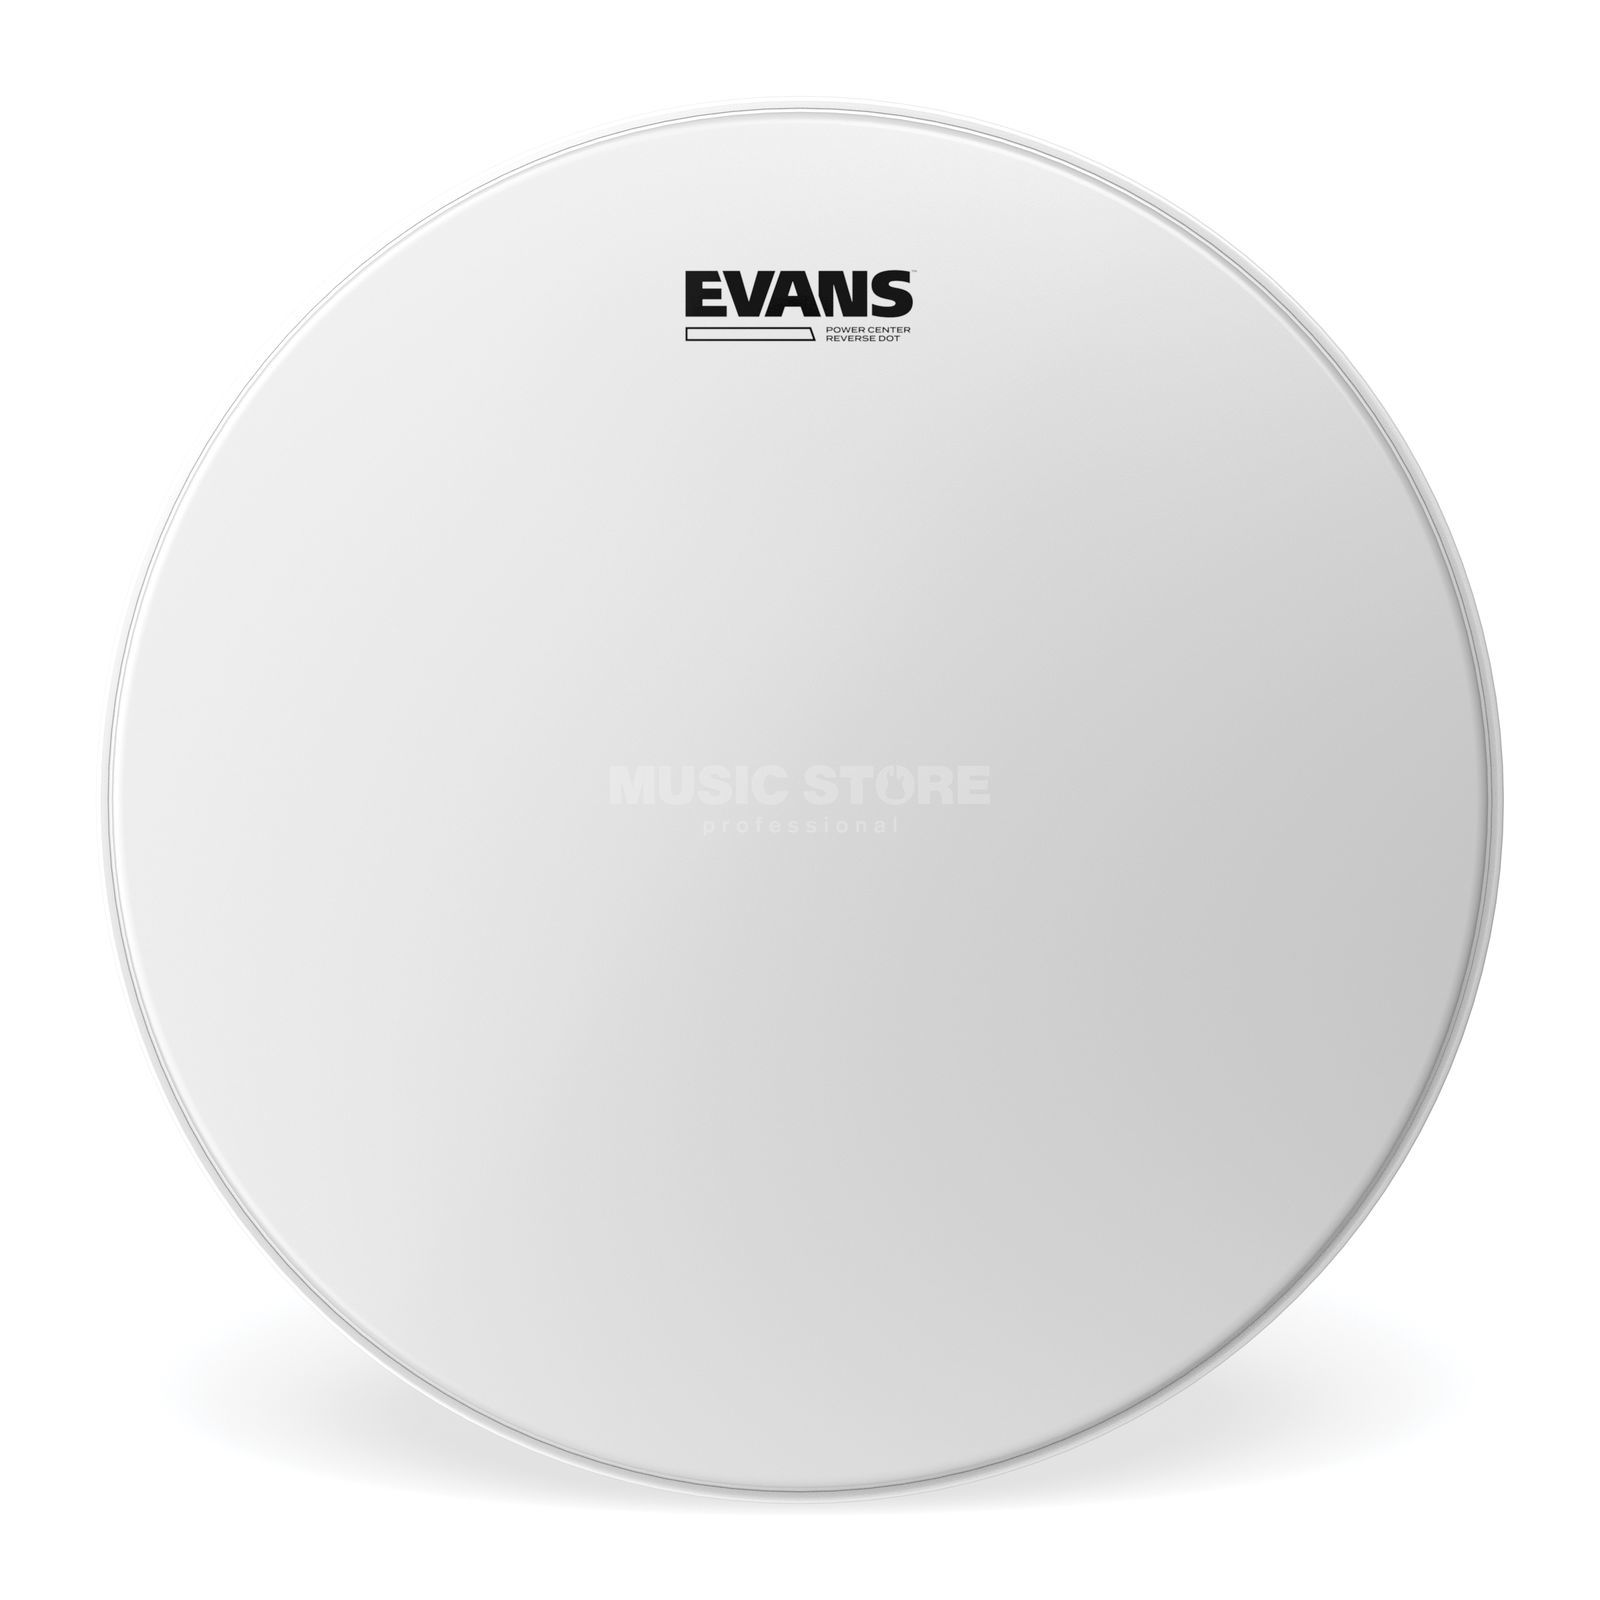 "Evans Power Center 13"", B13G1RD, Reverse Dot, Snare Batter Produktbild"